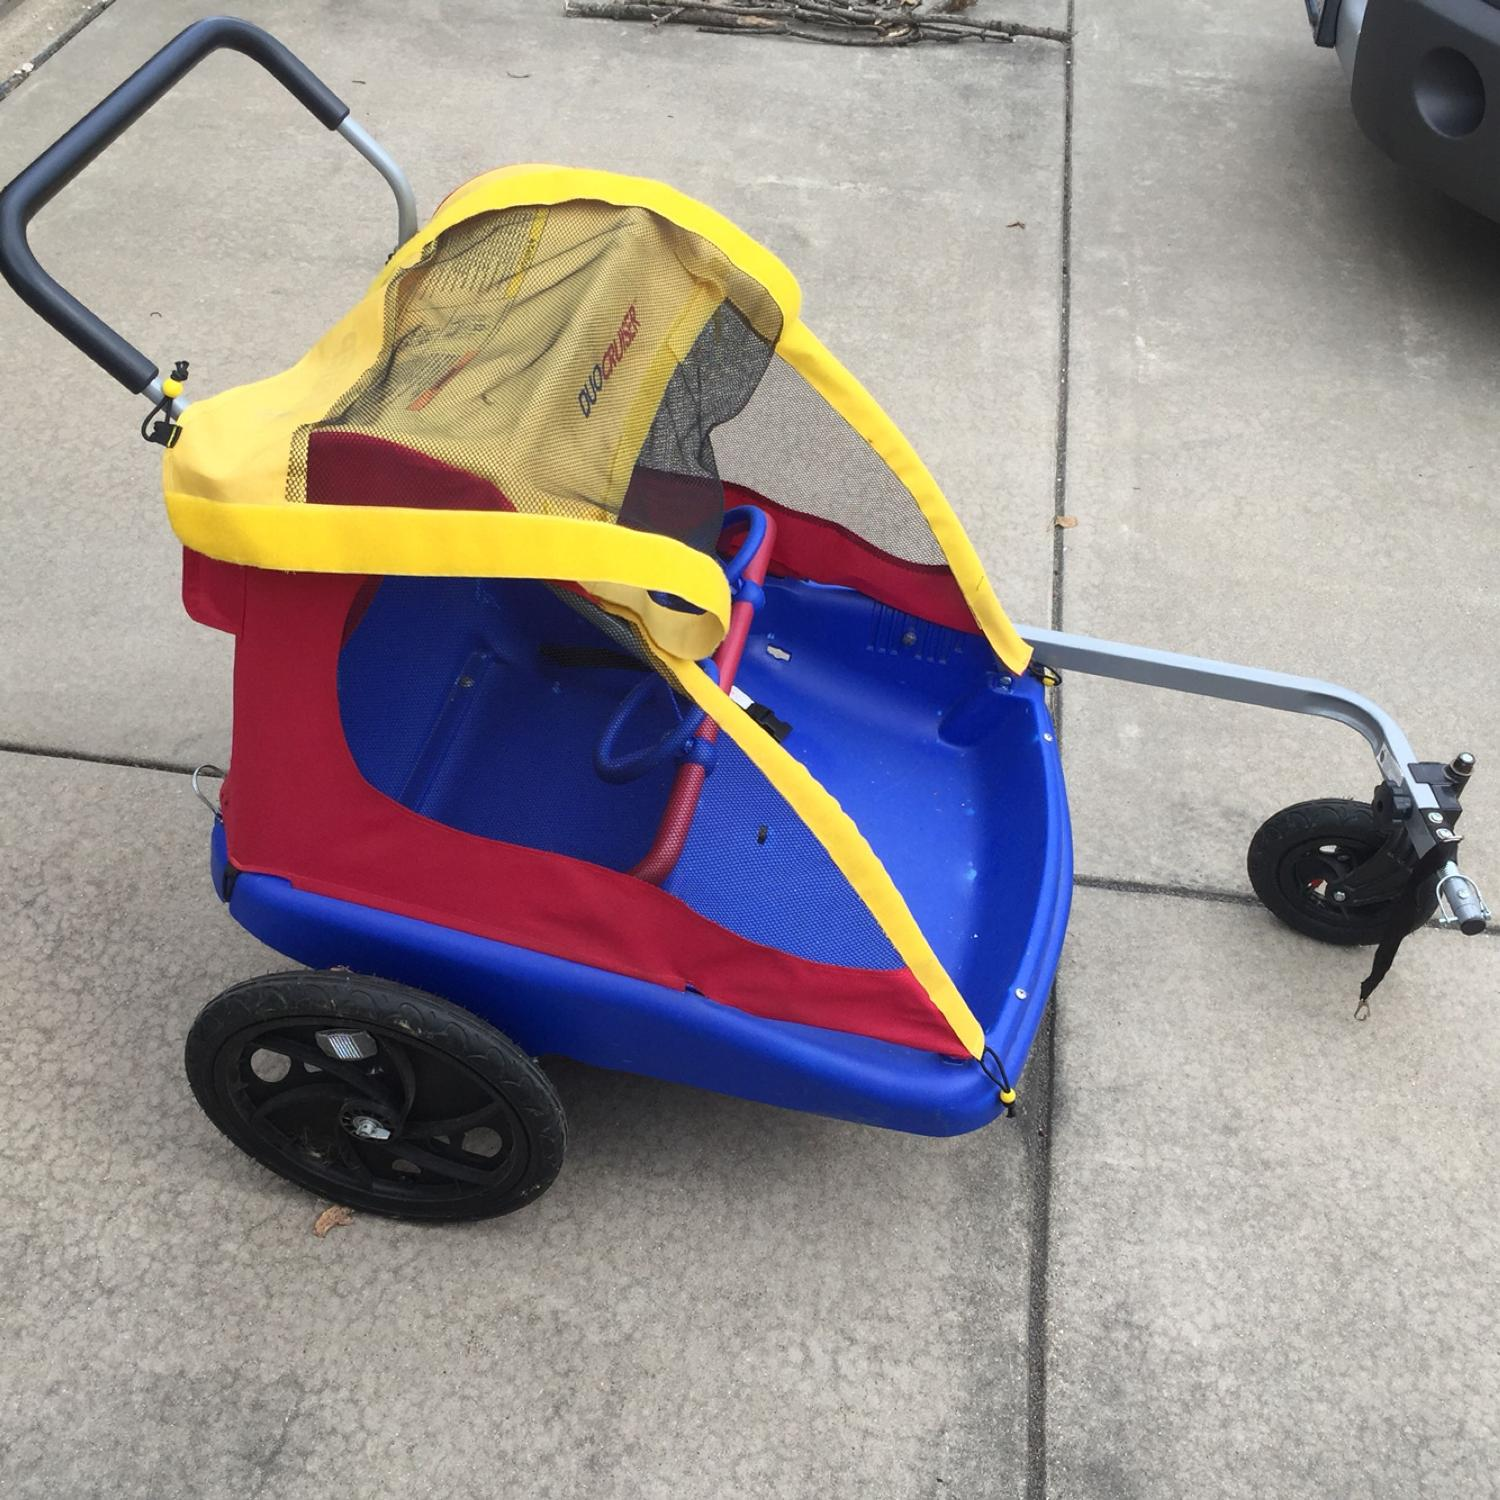 Find More Instep Duo Cruiser Bike Trailer For Sale At Up To 90 Off